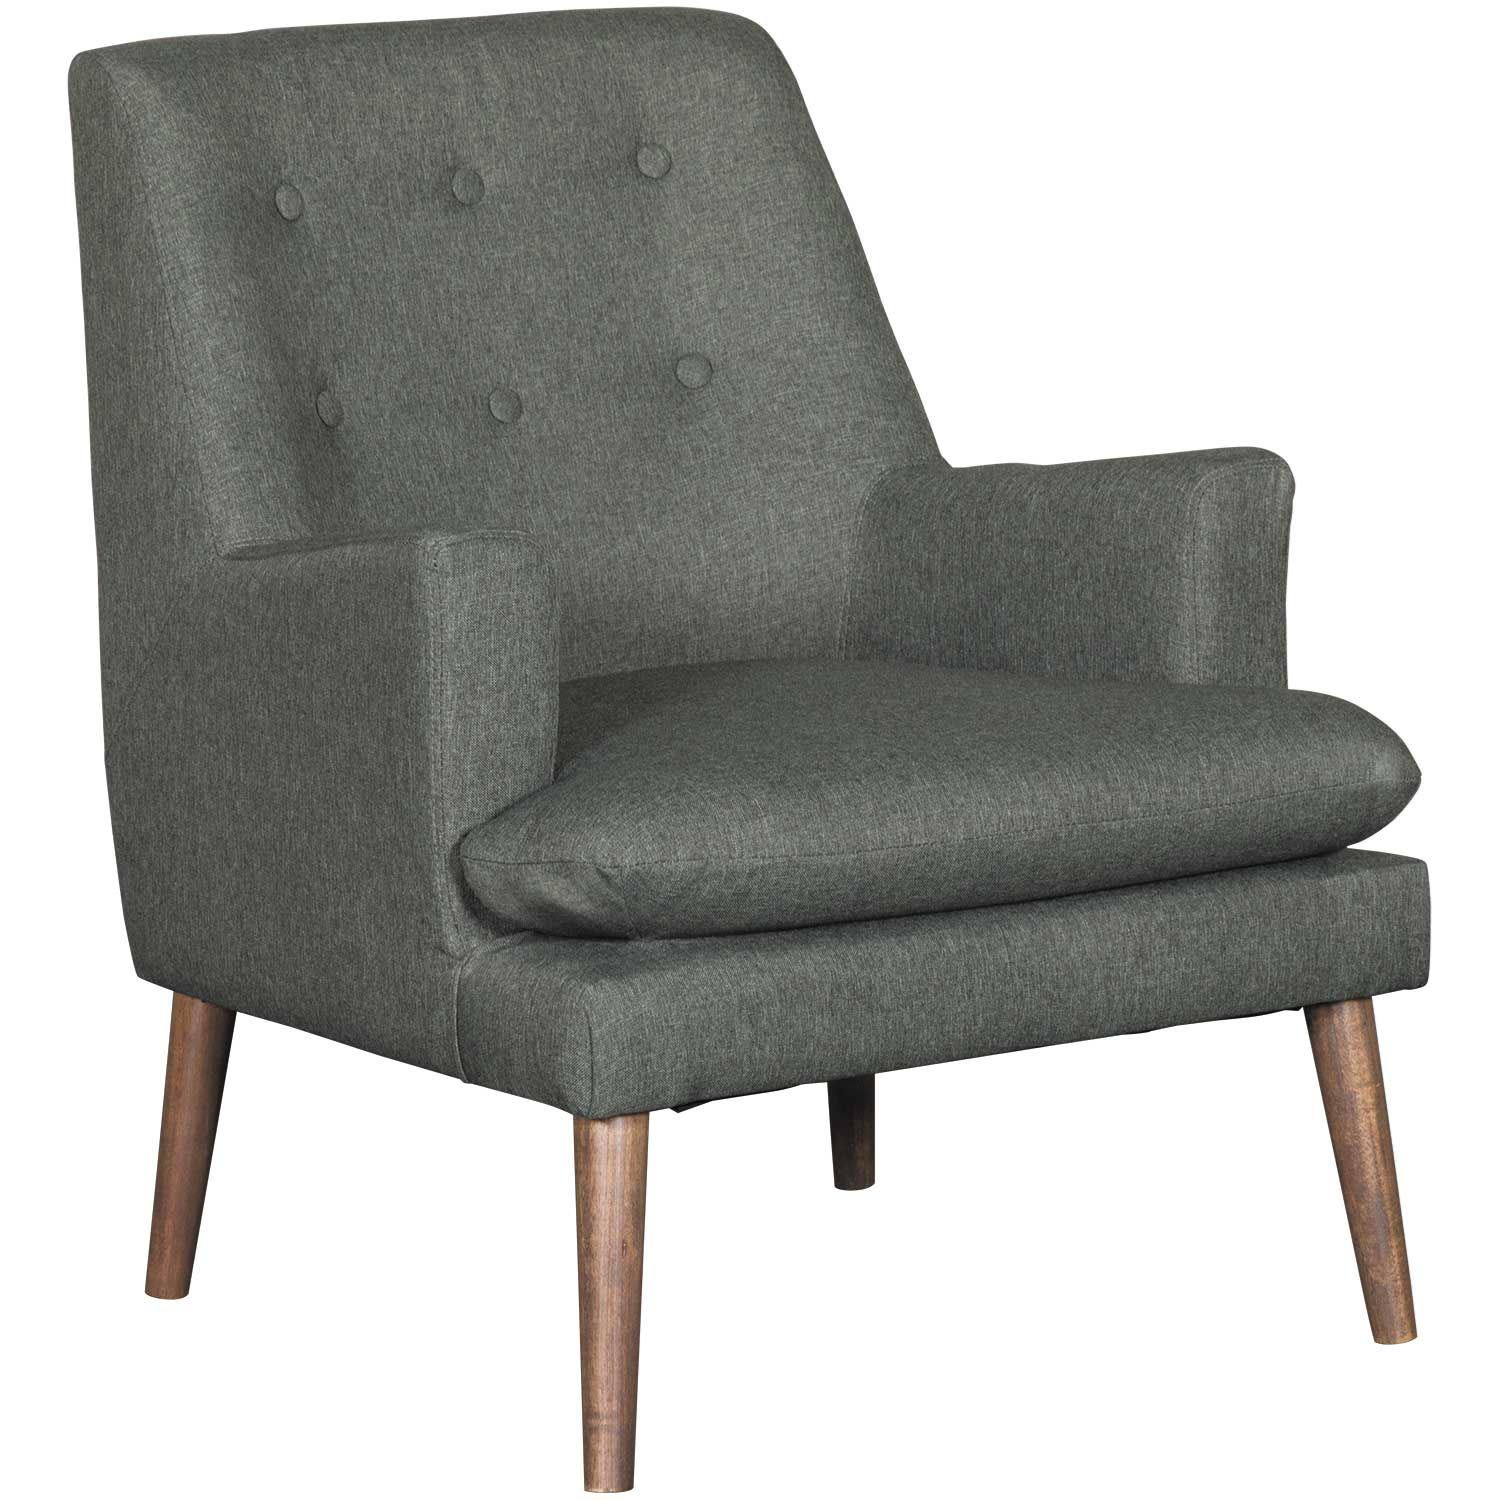 Modern Unique Accent Chairs.Urban Grey Accent Chair